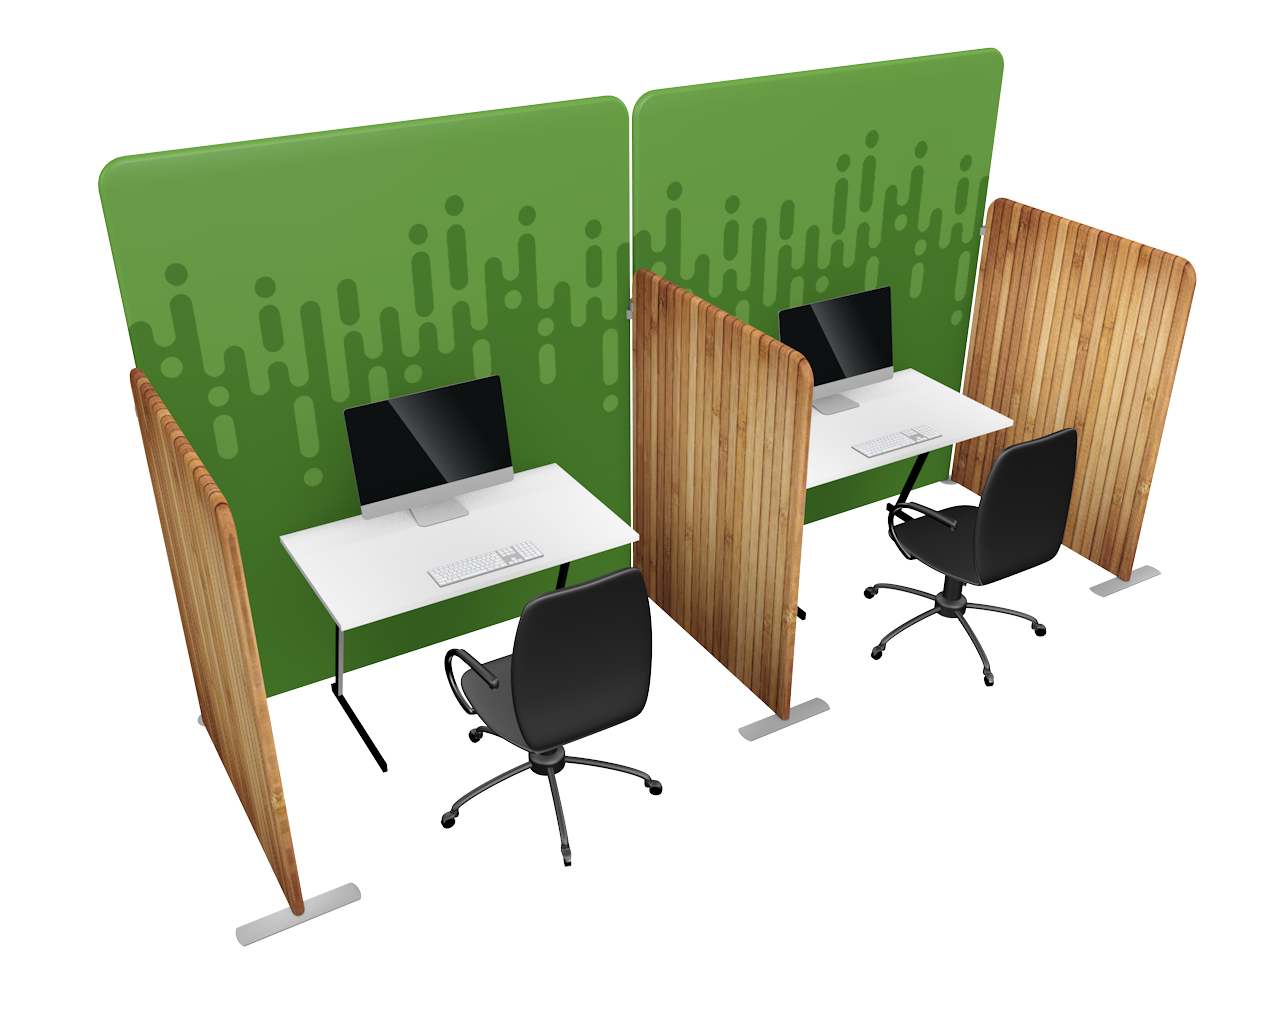 workplace divider kit_1.png